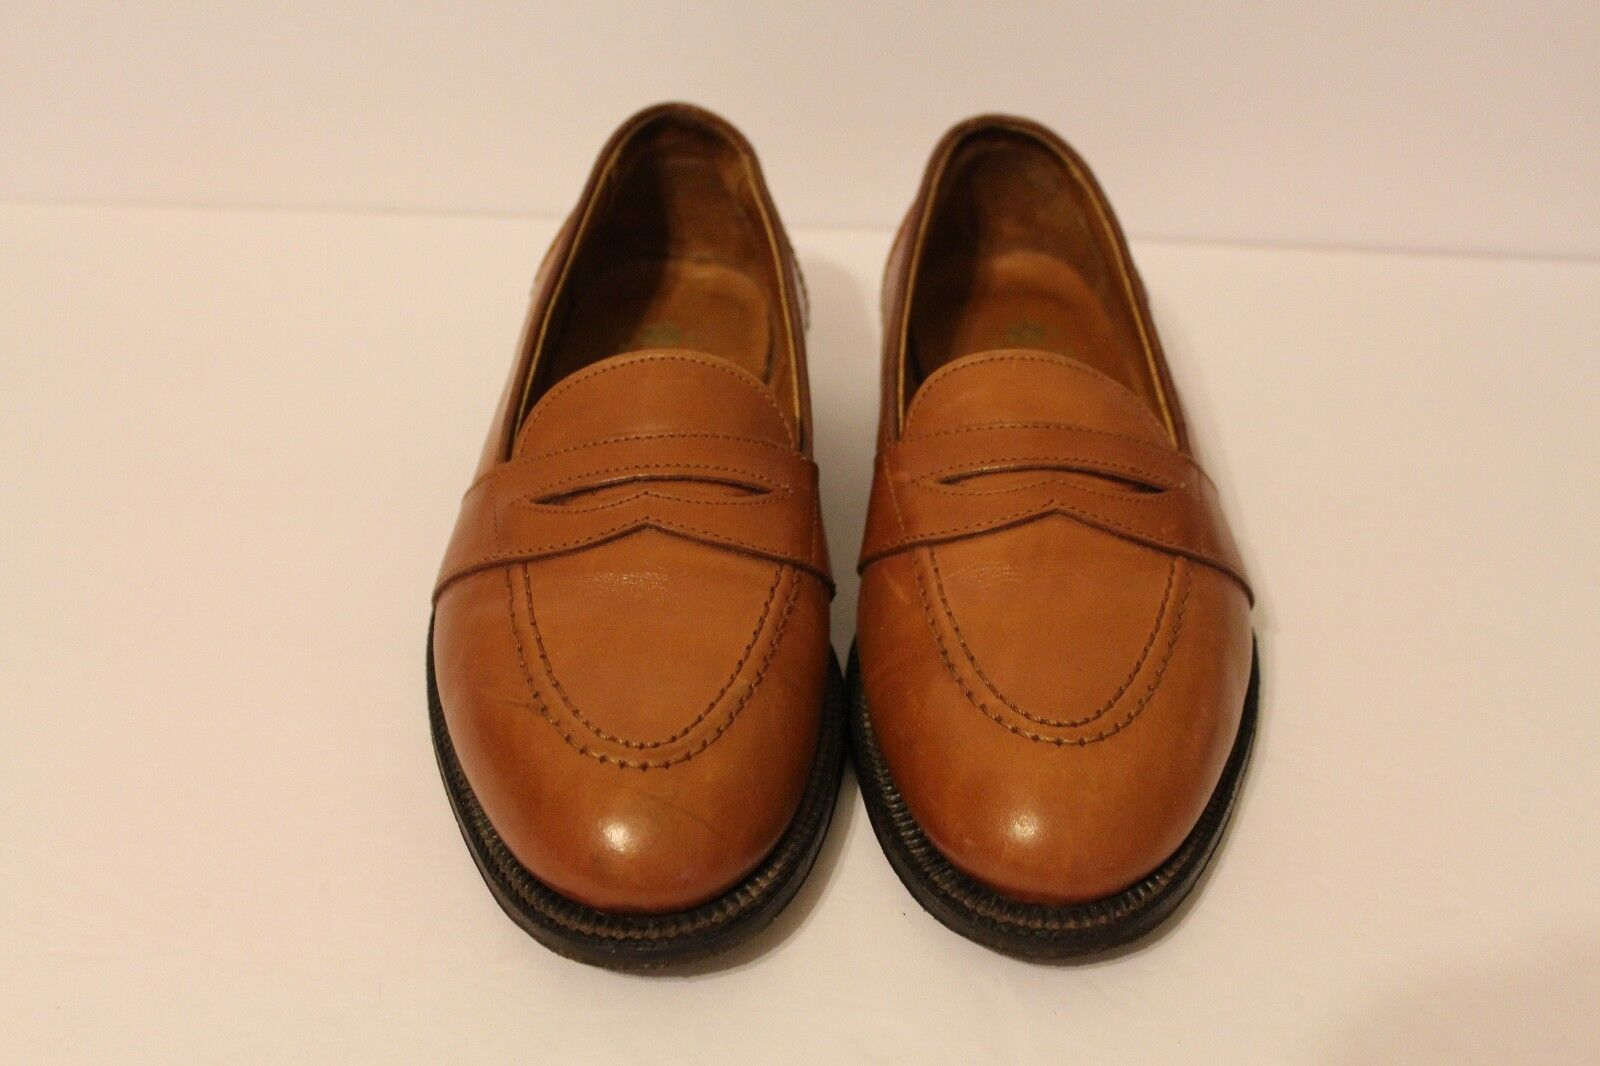 ALDEN OF NEW ENGLAND FULL STRAP-ON BURNISHED TAN MEN'S SIZE 7 C E USA